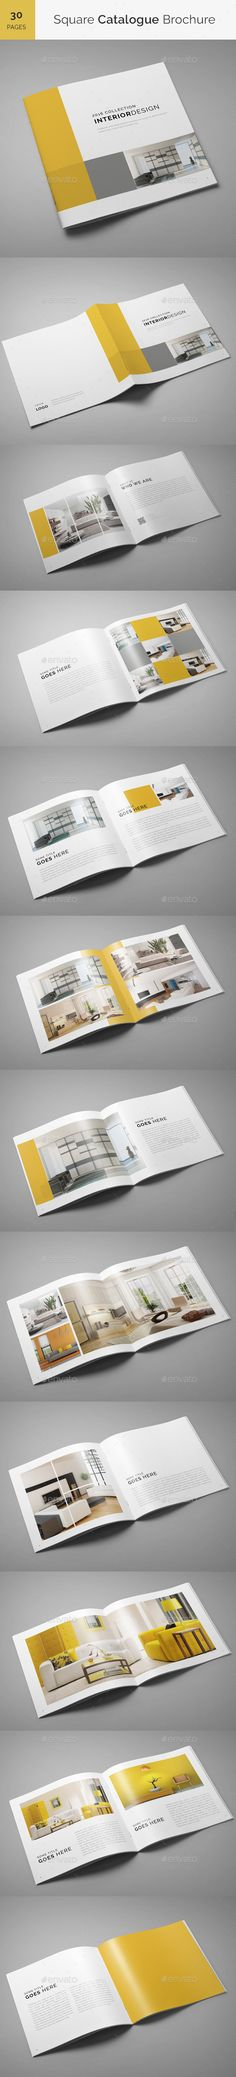 Square Catalogue Brochure Template InDesign INDD. Download here: http://graphicriver.net/item/square-catalogue-brochure/15126122?ref=ksioks